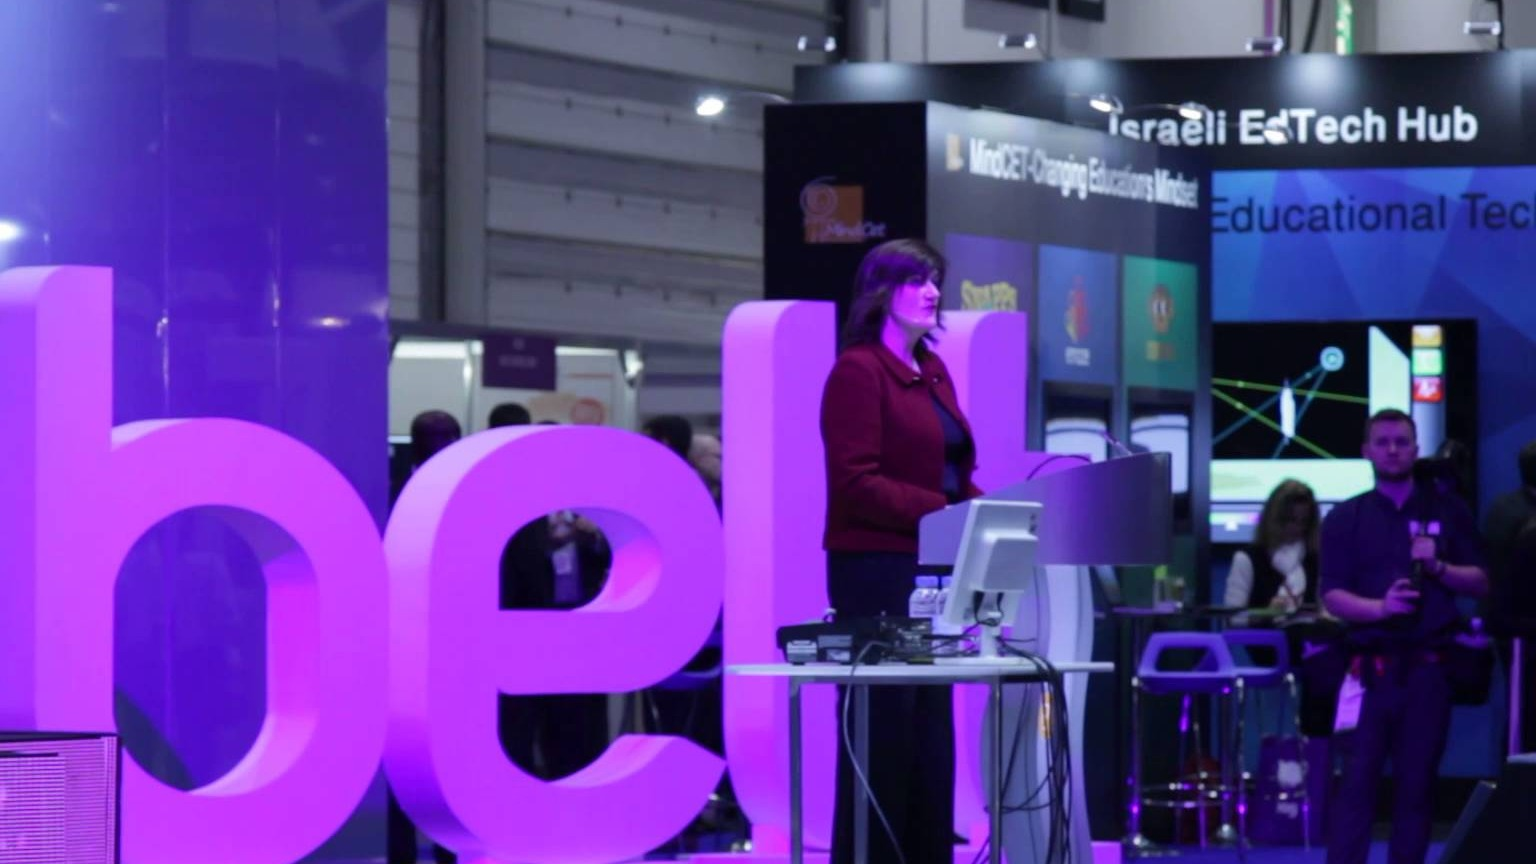 Speaker addressing audience in front of Bett letters at Bett Conference